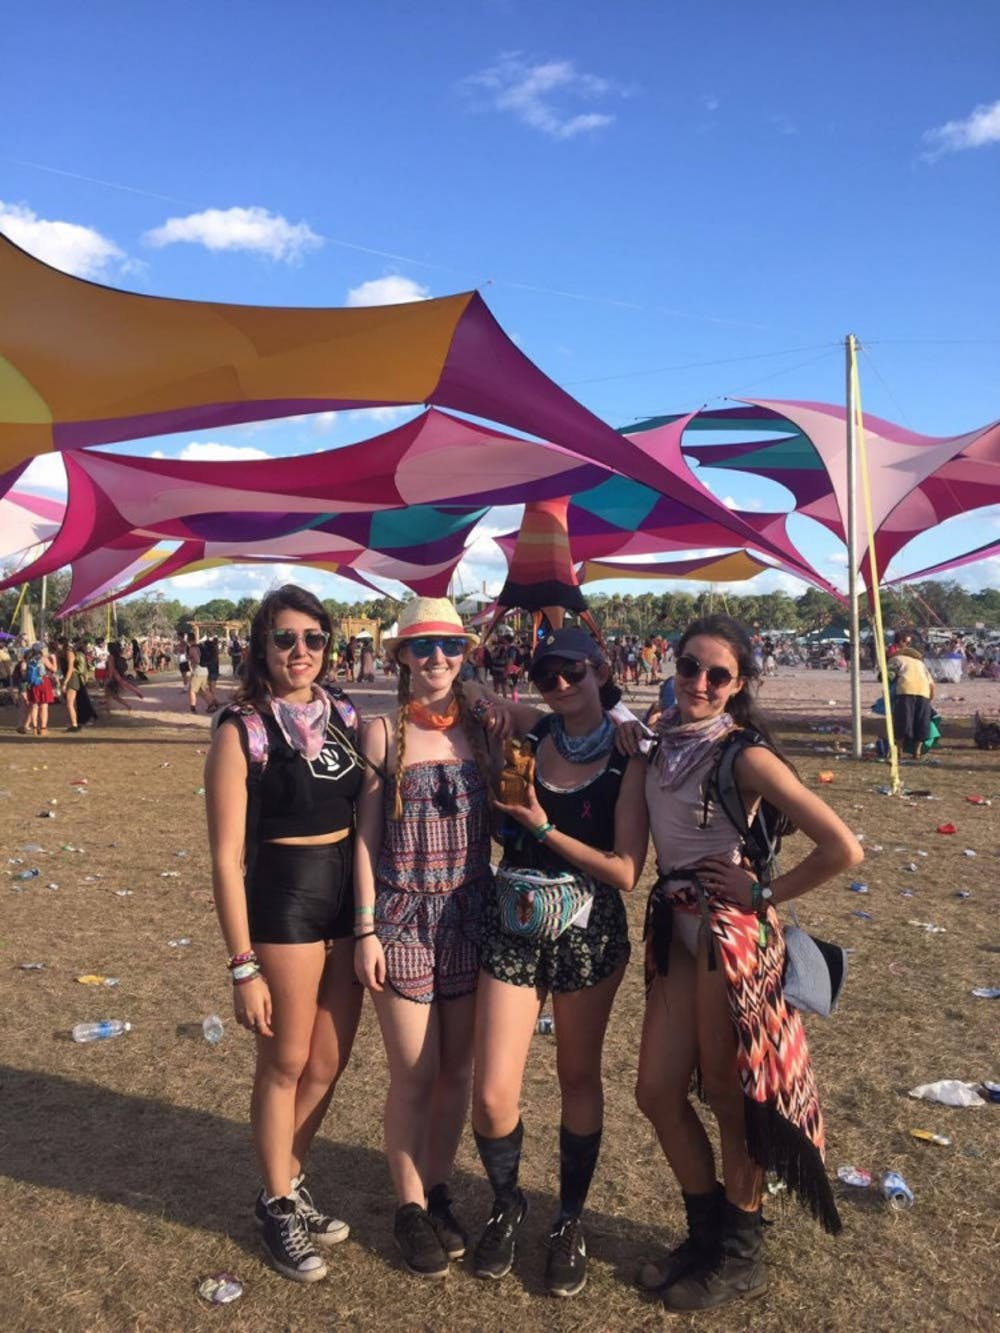 <p><span>From left: Caroline Alfano, Nicole Scherten, Laura Delaney and Meghan Mapes pose together at Okeechobee Music Festival on March 4. The next day, Alfano and Scherten left for Alfano's home in Boca Raton and died in a crash.</span></p>